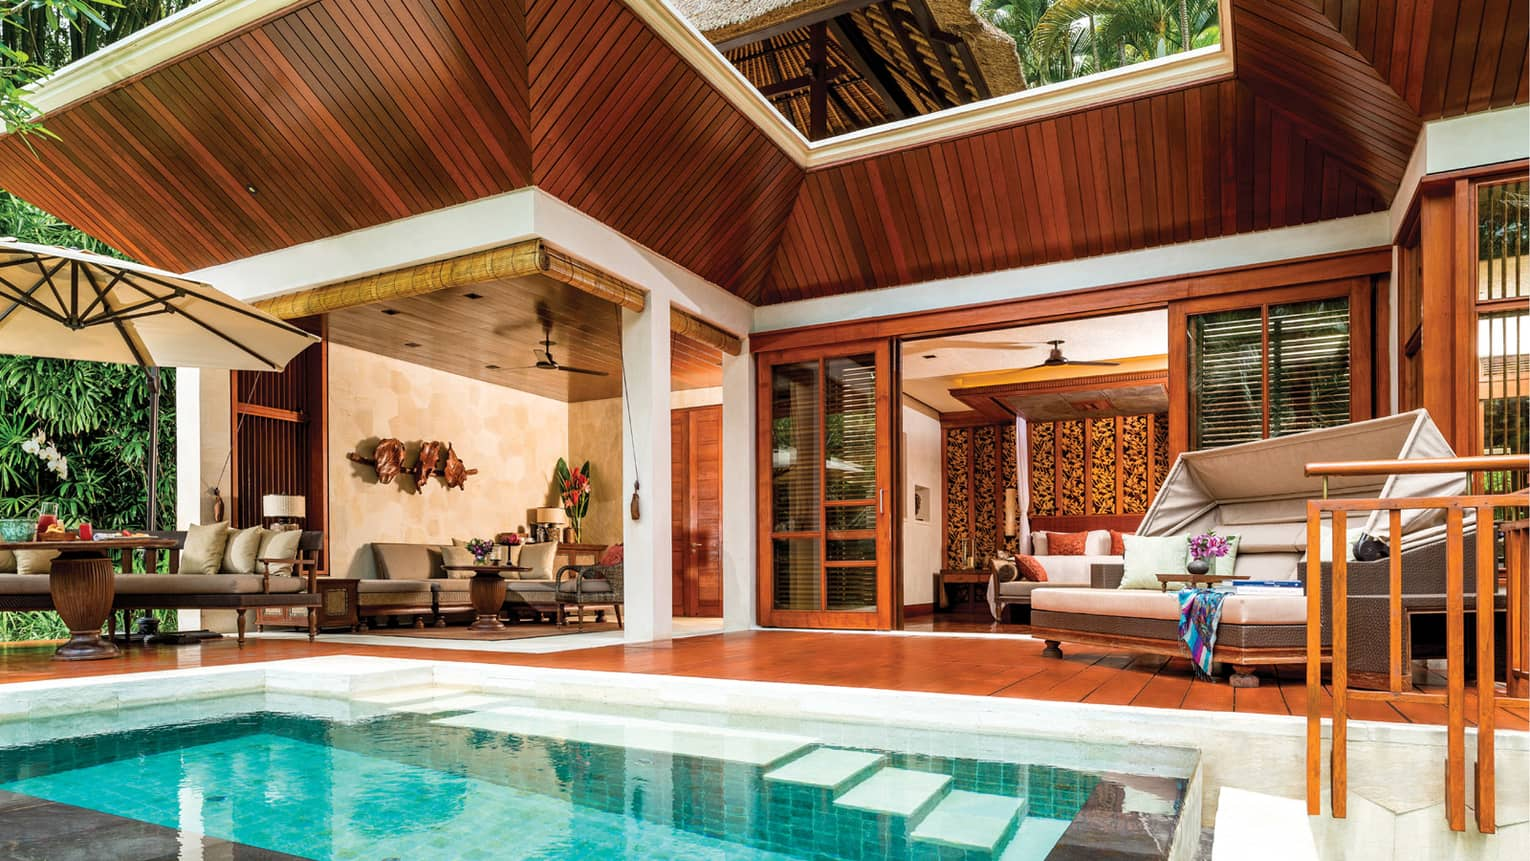 Small rectangular plunge pool in front of wood patio with beige sofas and dining chairs, wood villa roof